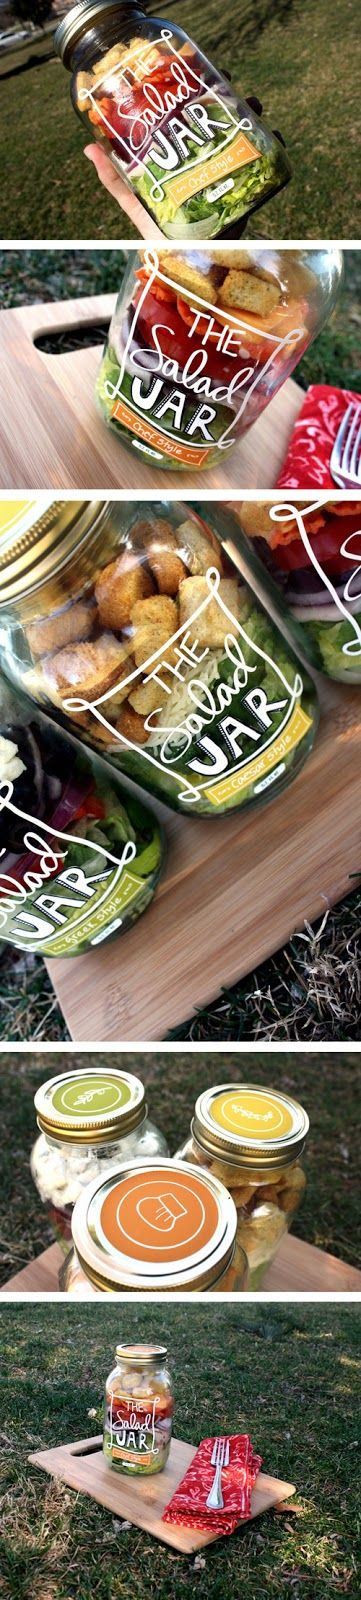 The Salad Jar packaging design